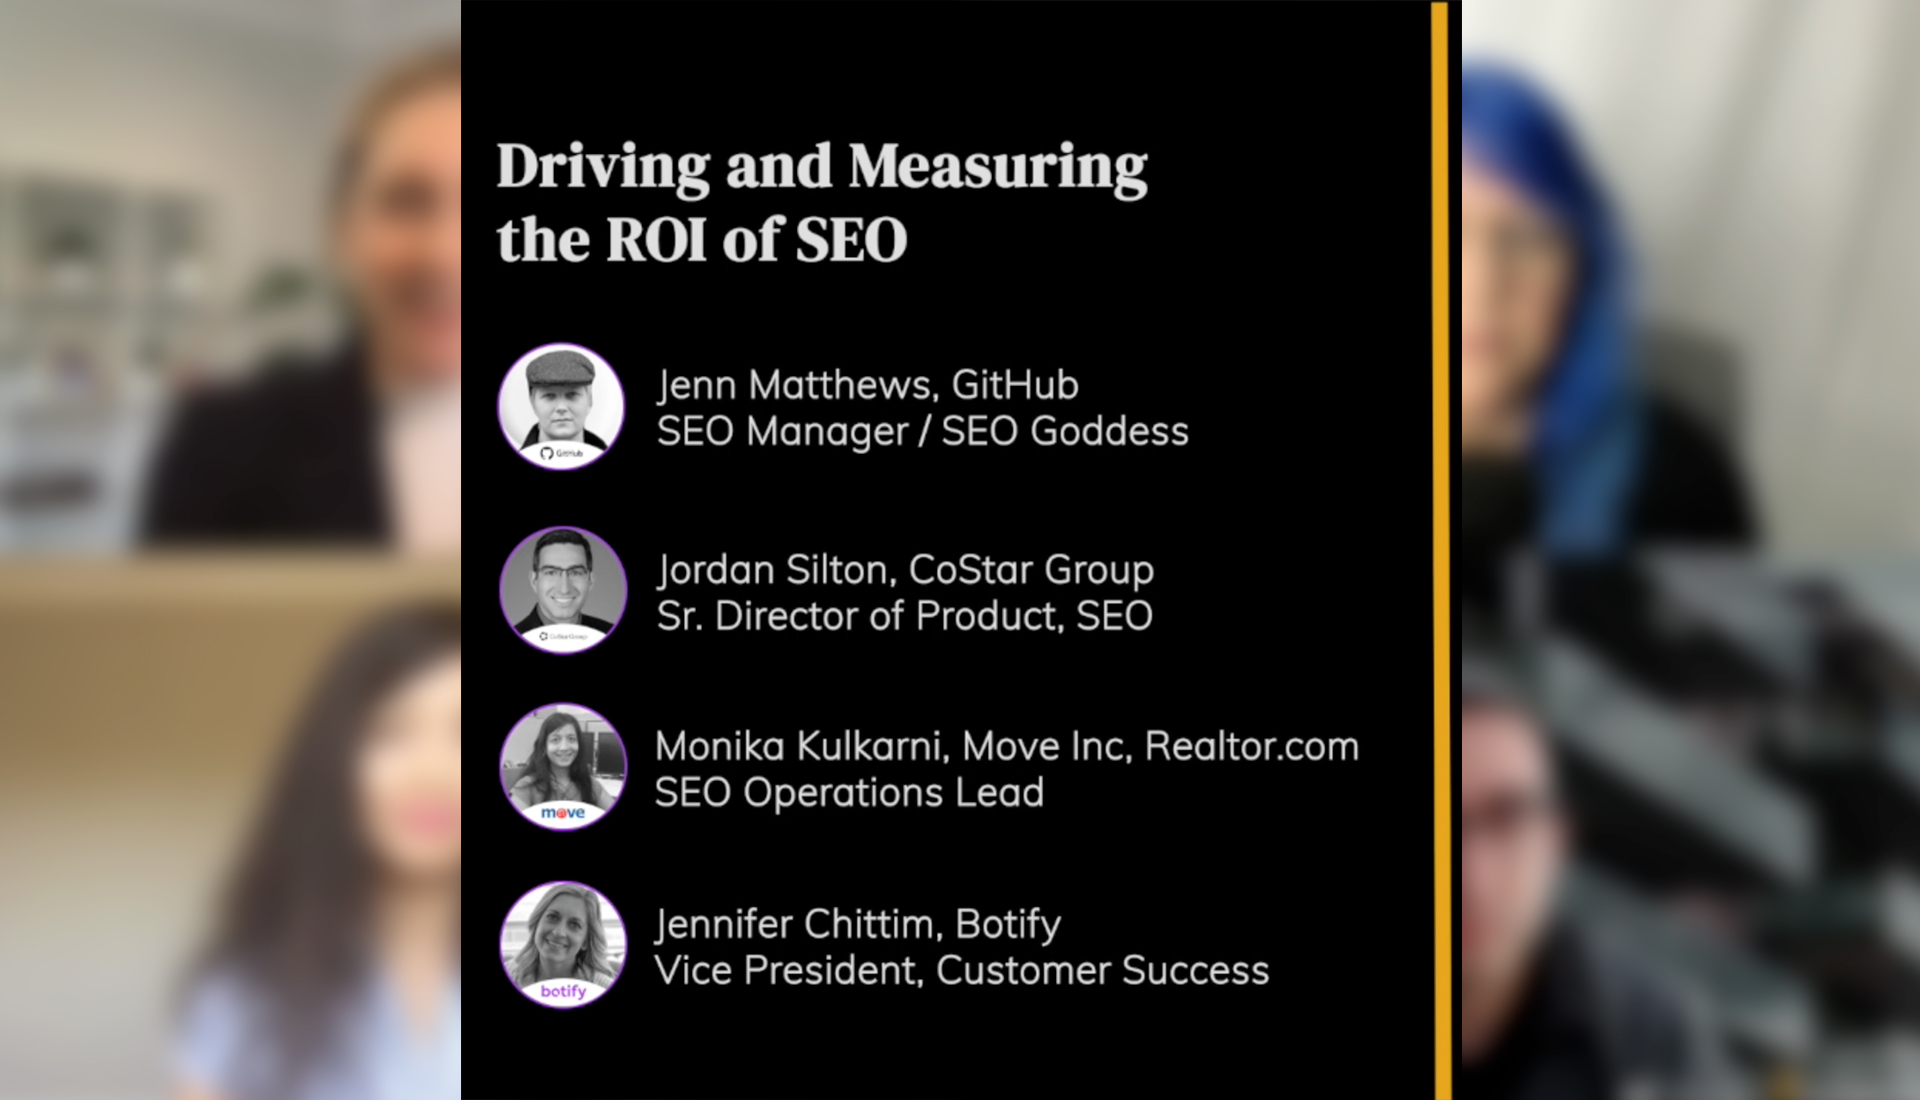 Driving and Measuring the ROI of SEO